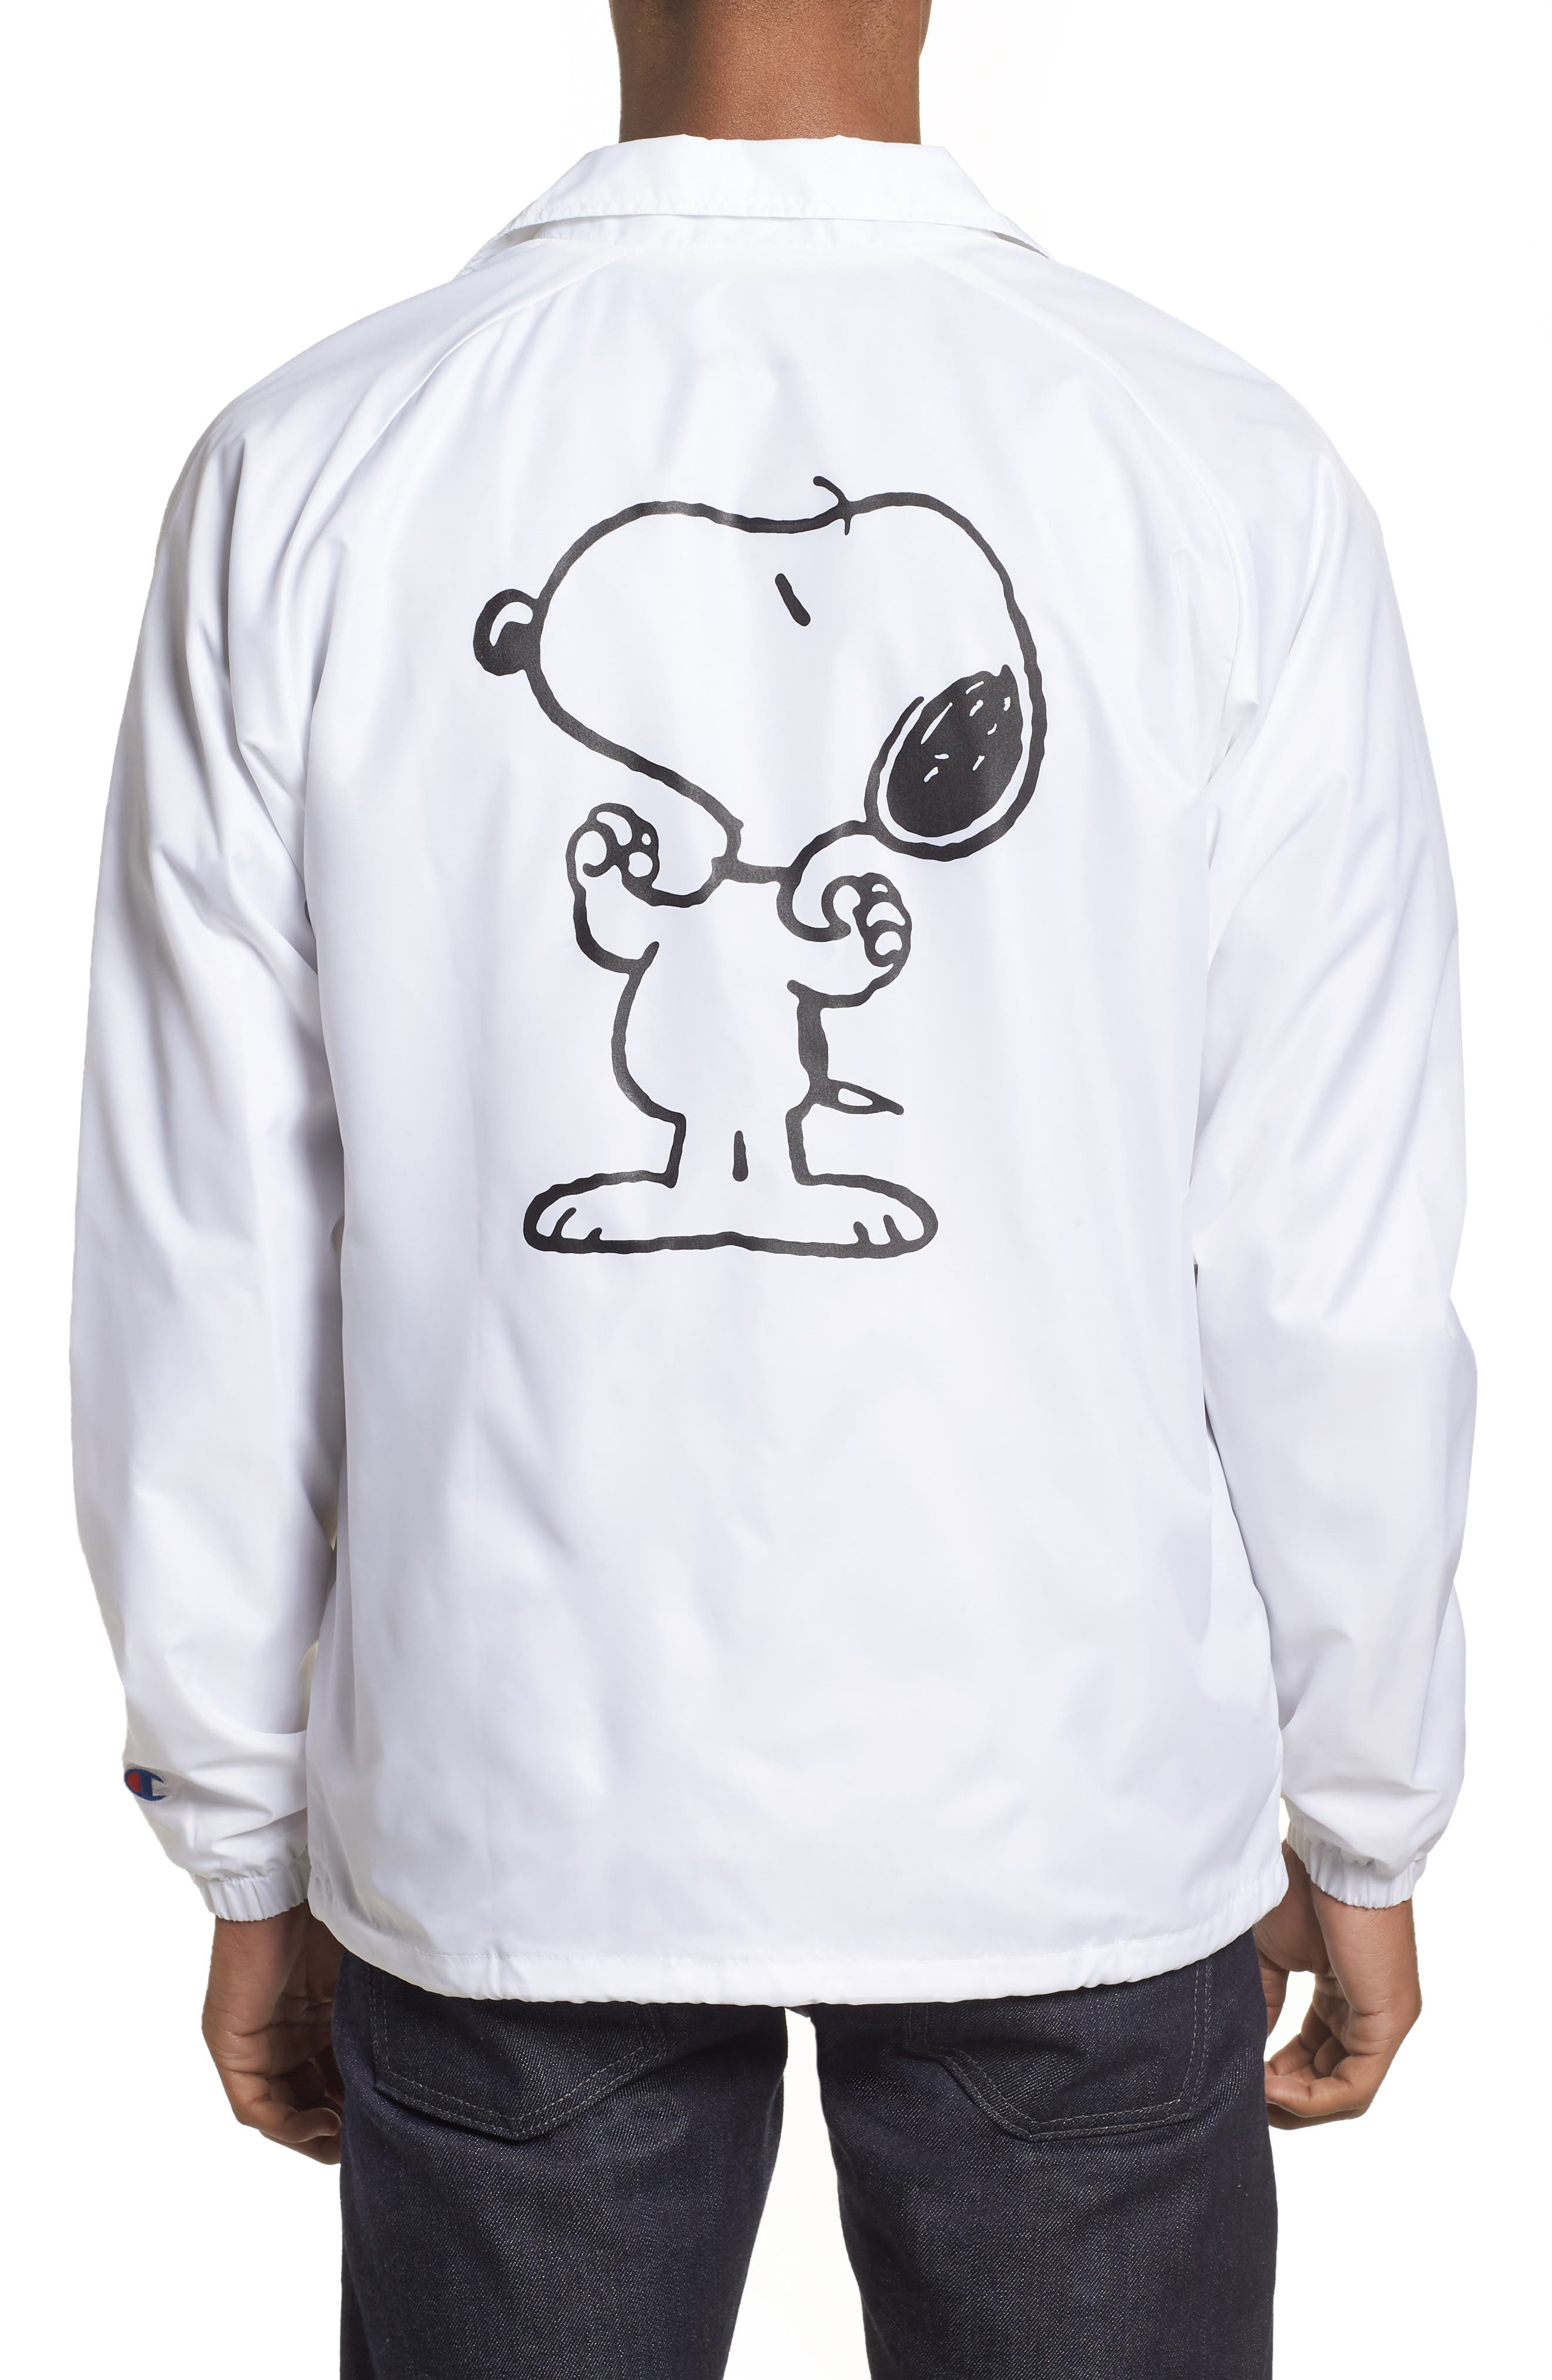 Snoopy Unisex Coach's Jacket,                             Main thumbnail 1, color,                             White